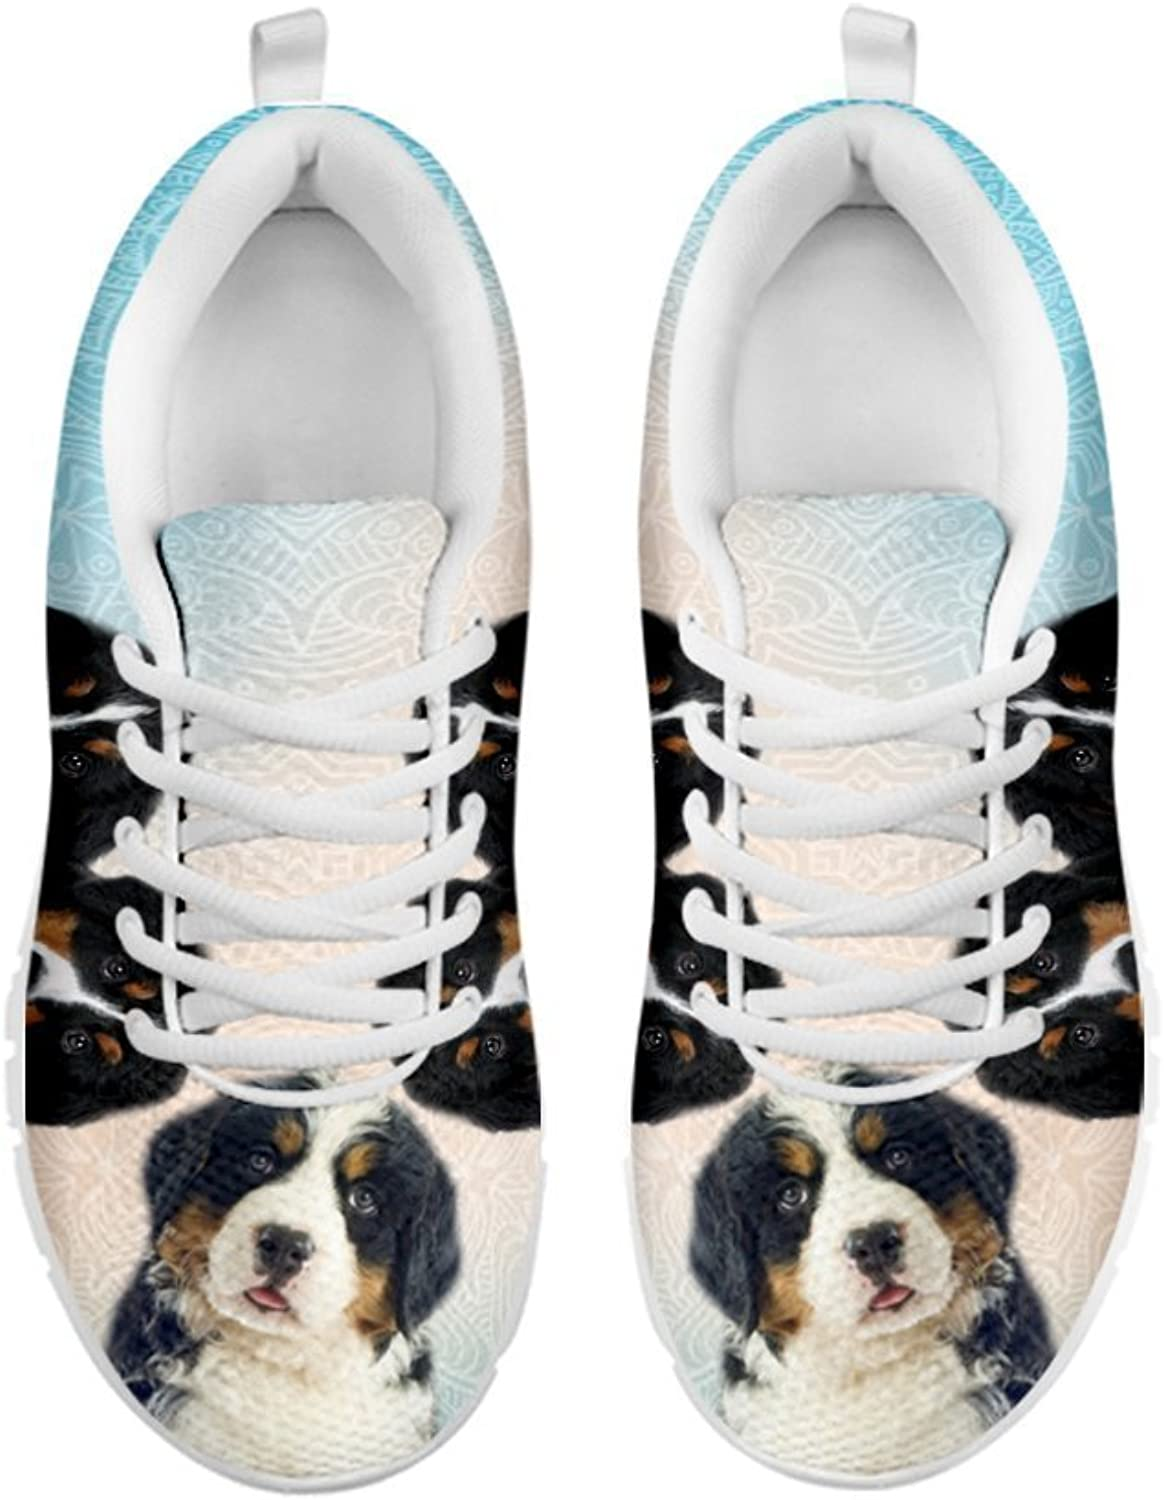 Pet By You Amazing Three Bernese Mountain Dog 3D Printed Sneakers, Light Weight Sneakers for Women, Breathable Jogging Running Gym shoes, Women Sneakers - US Sizes 5-12.